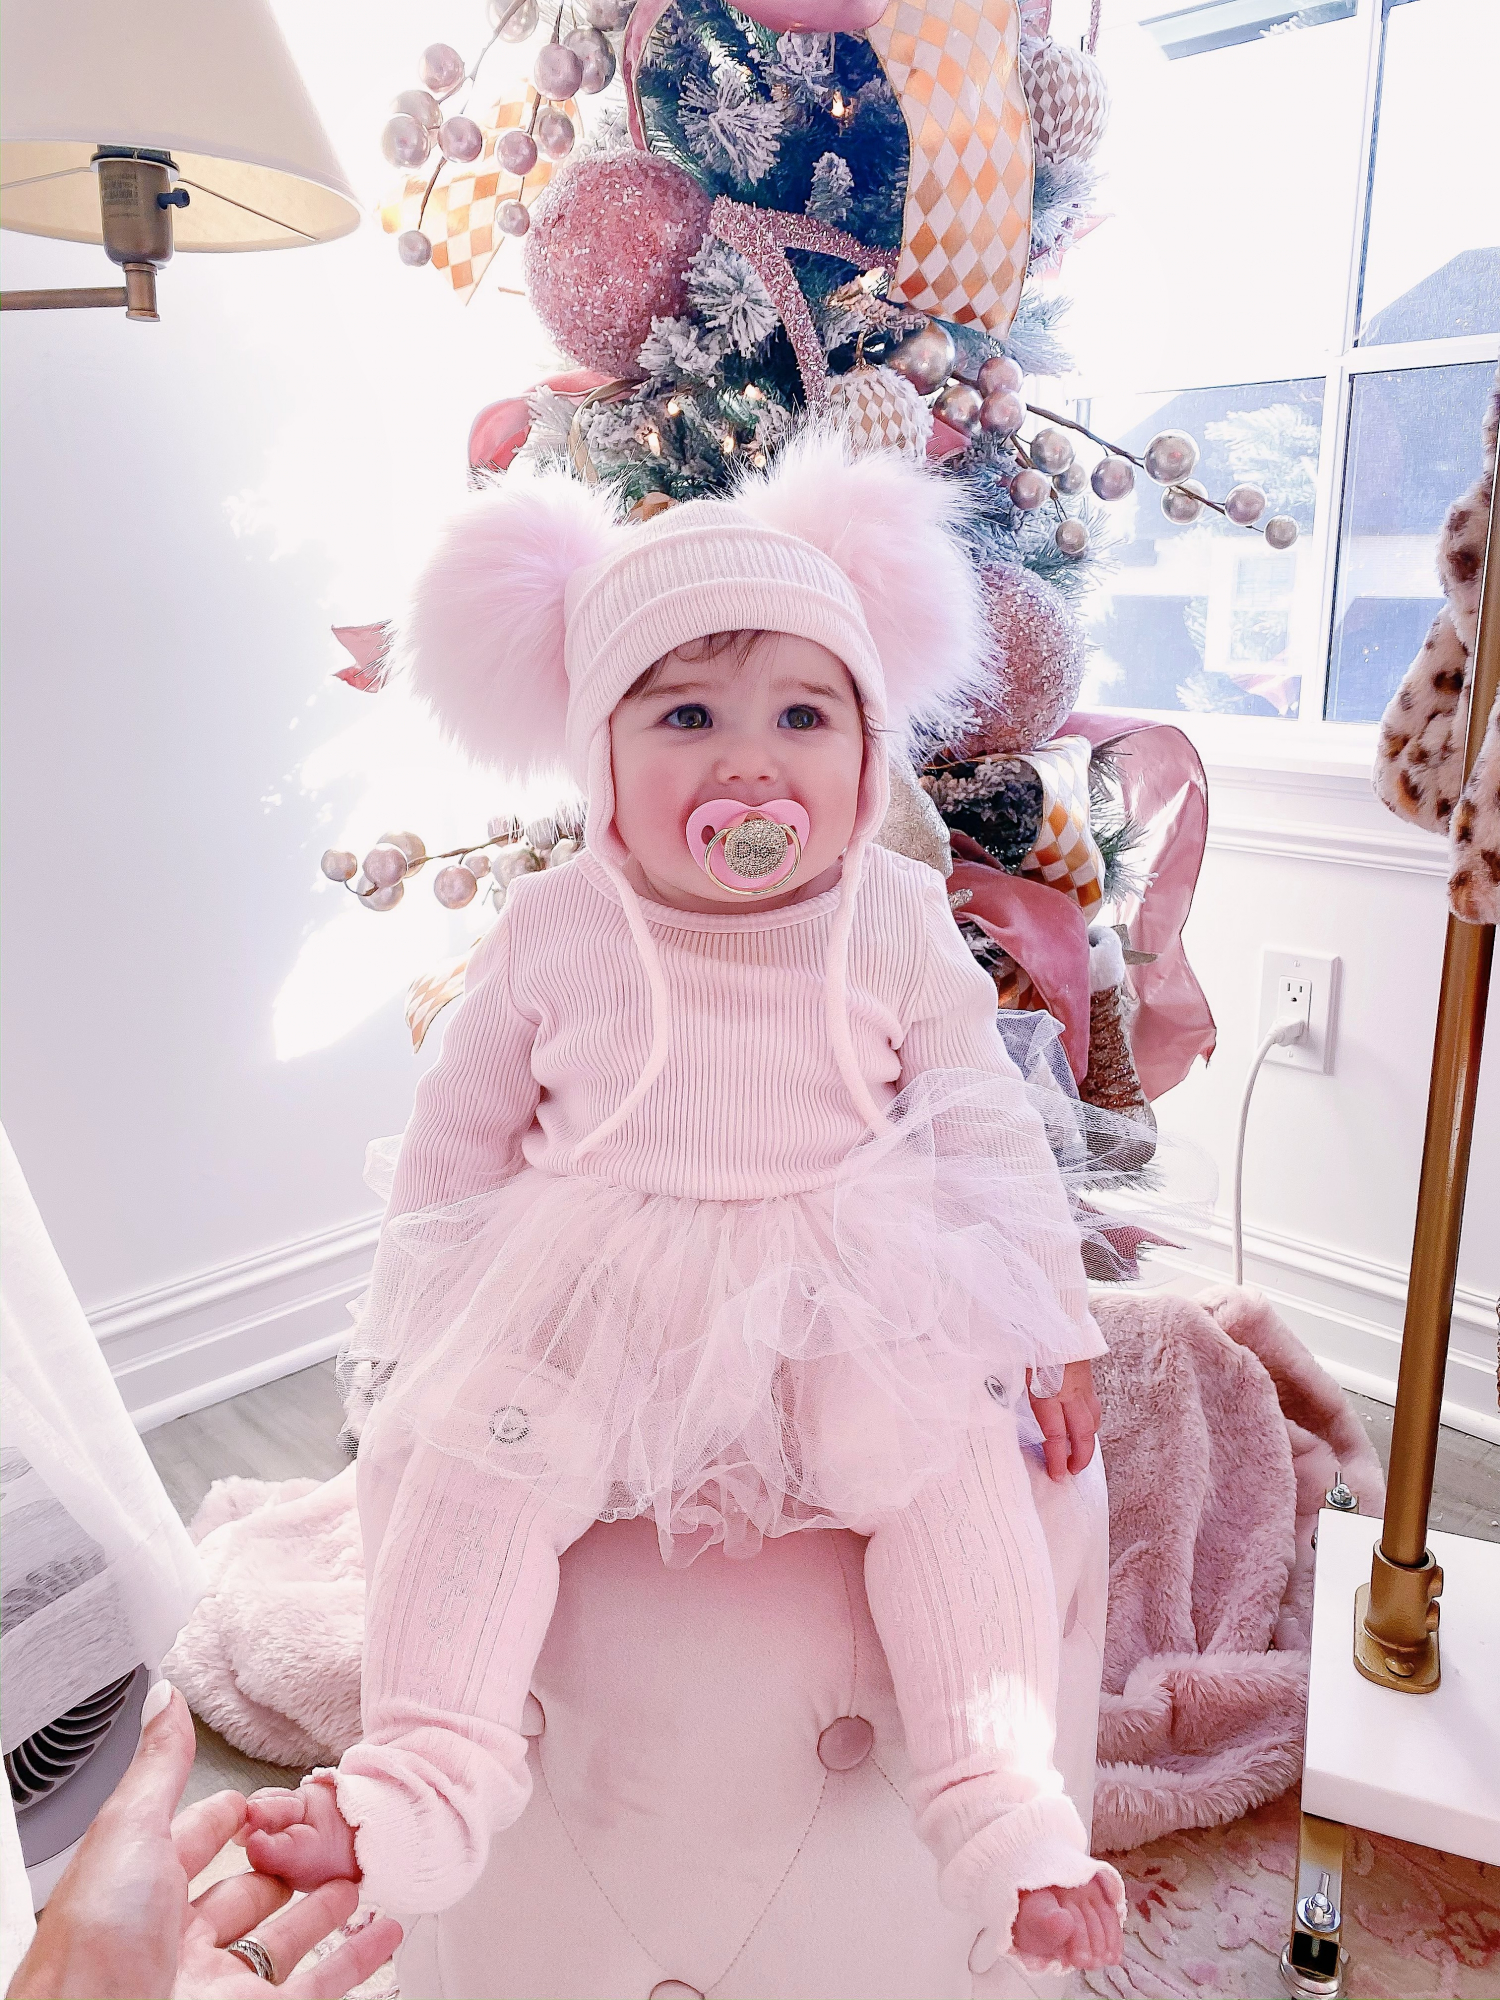 baby girl fashion blogger pinterest, baby girl fashionista, sophia gemma | A YEAR IN REVIEW : MASSIVE 2019 INSTAGRAM RECAP by popular Oklahoma life and style blog, The Sweetest Thing: image of a baby with a Sugar Plum Avenue Dior pacifier and wearing a Nordstrom Tutu Bodysuit Dress SEED HERITAGE and H&M Leg Warmers.